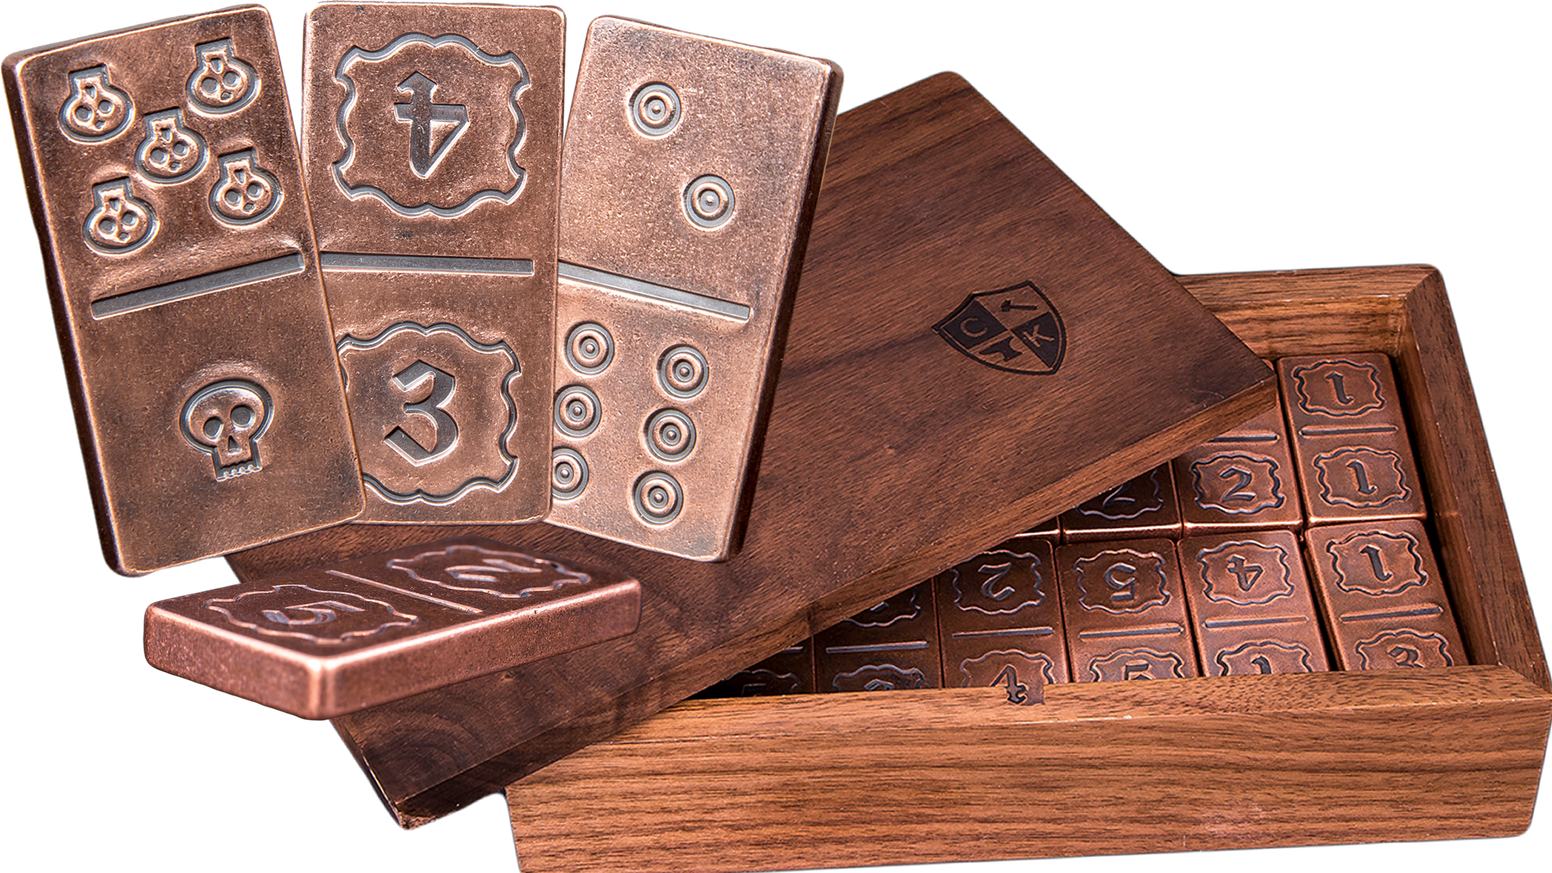 Unique design and individually handcrafted tiles makes this the most incredible domino set you'll find! Made to last a lifetime!